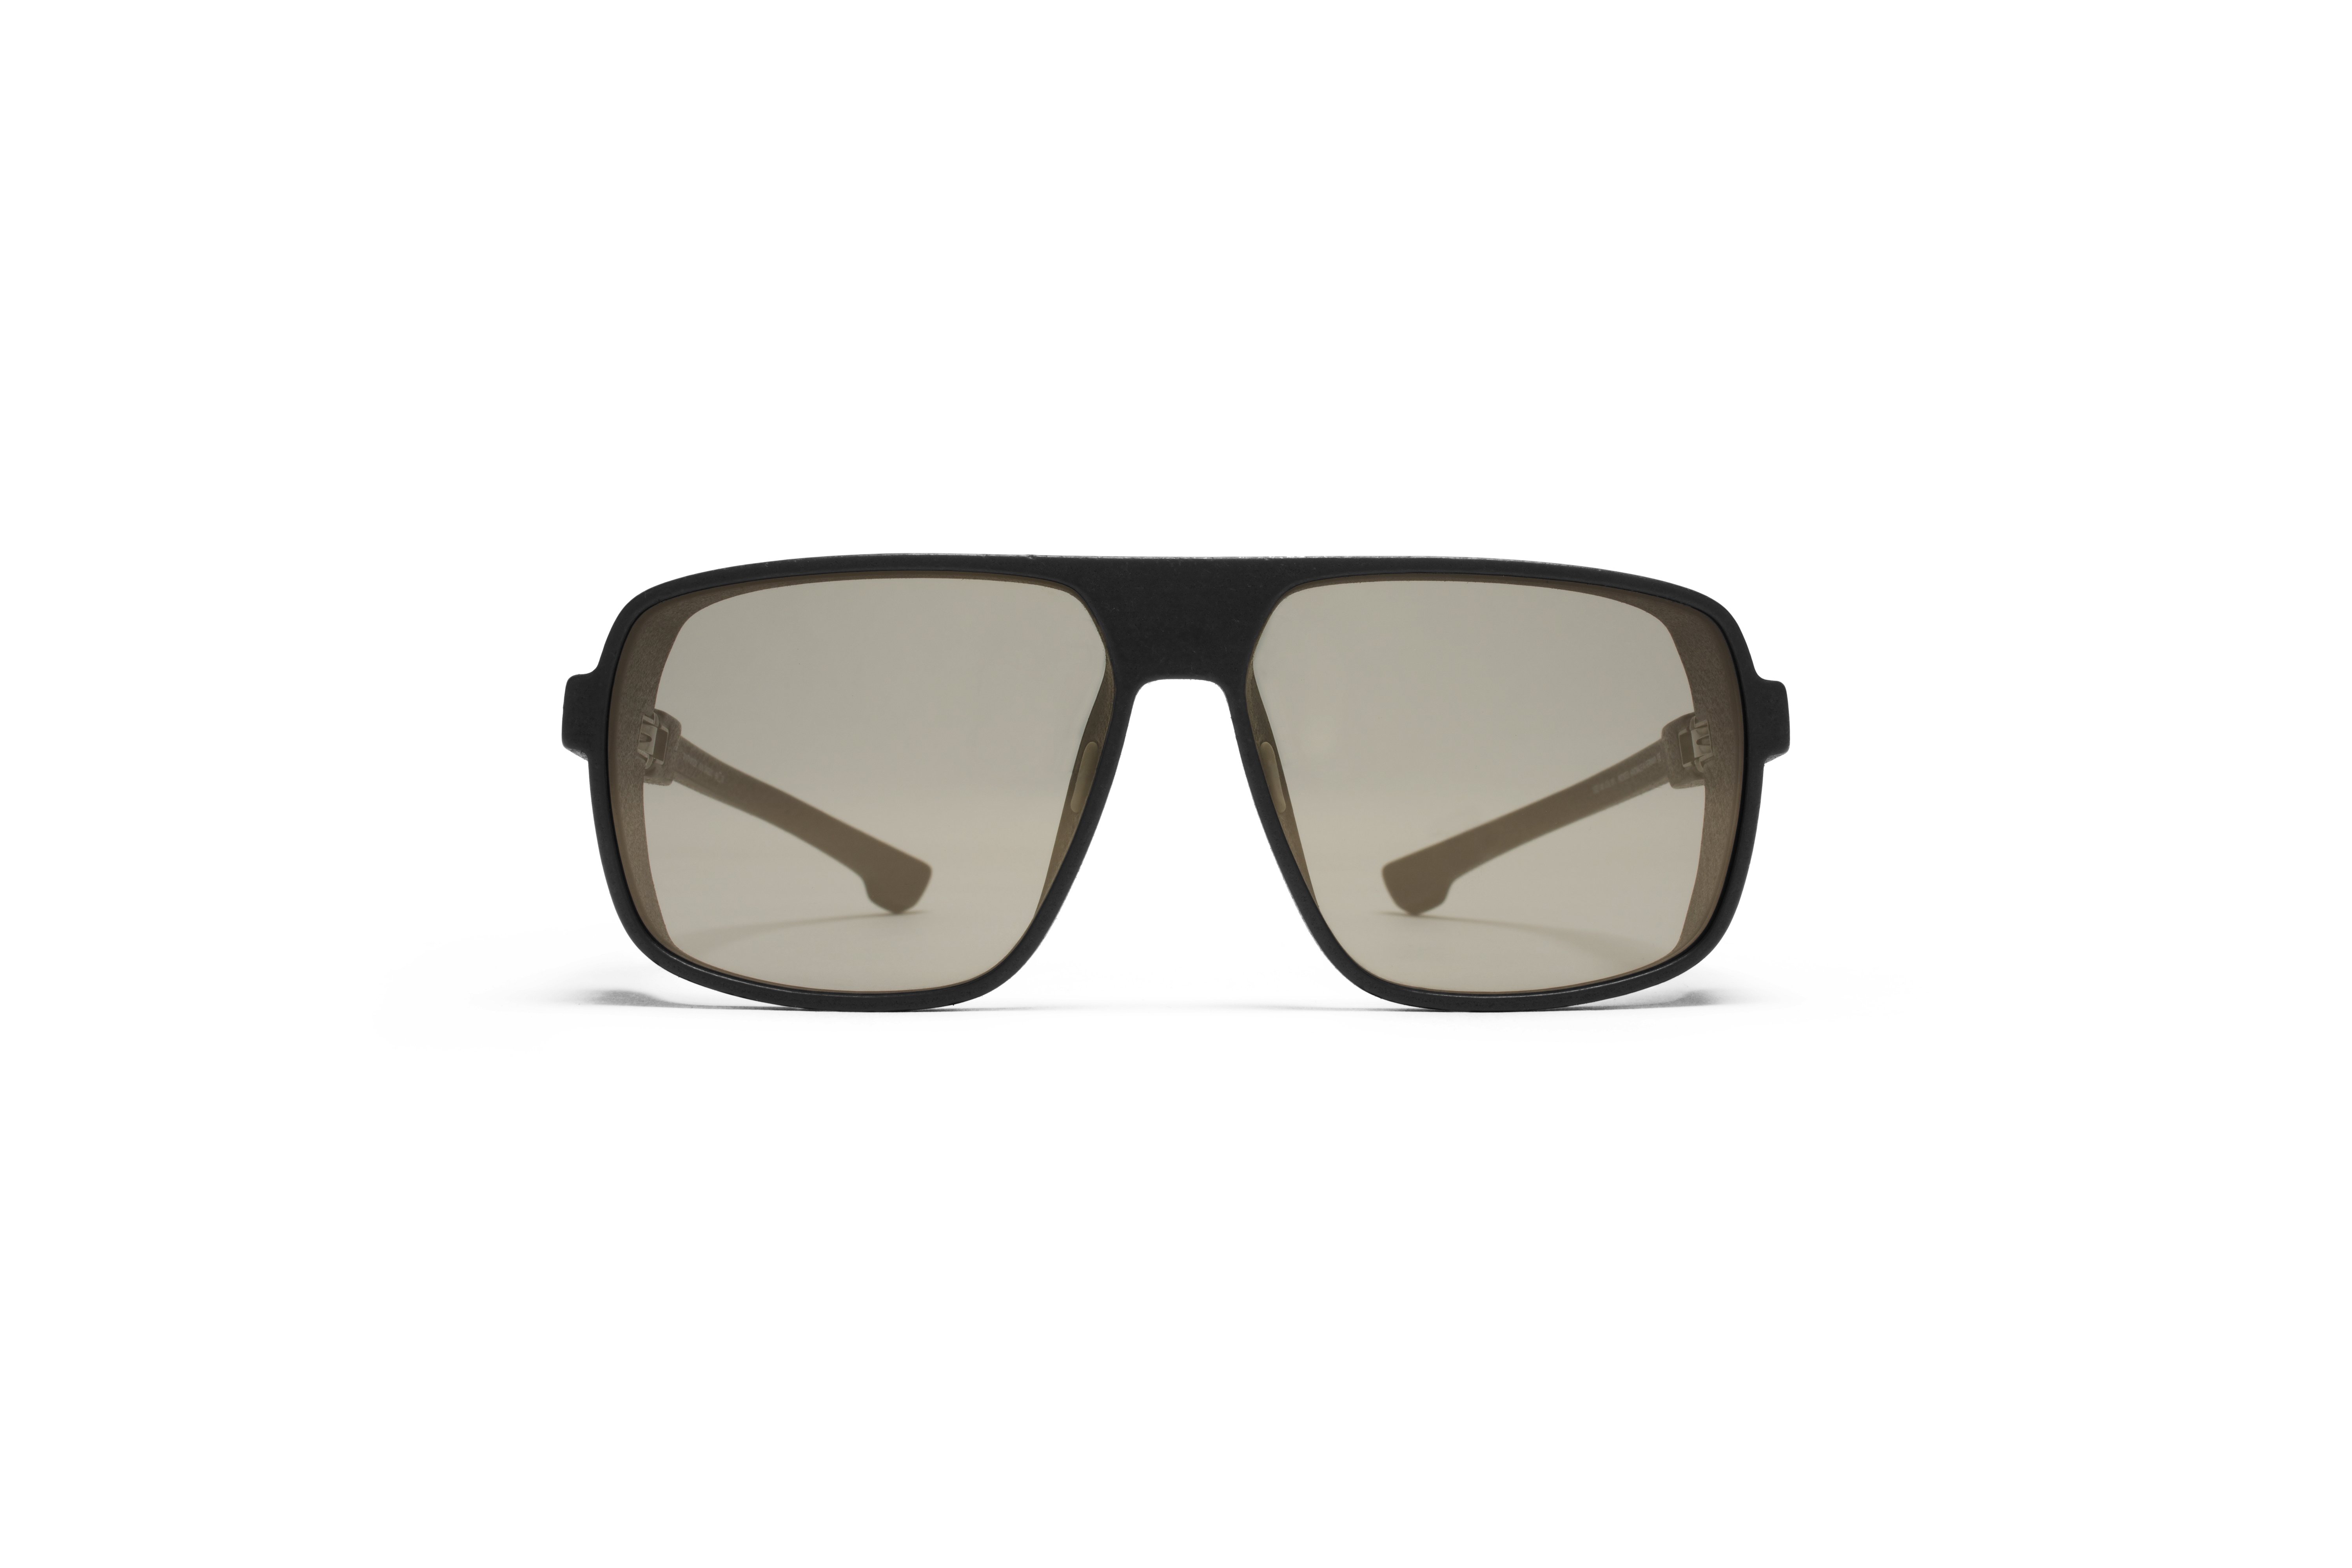 MYKITA Mylon Sun Daggoo Md1 Pitch Black Grey Gunme